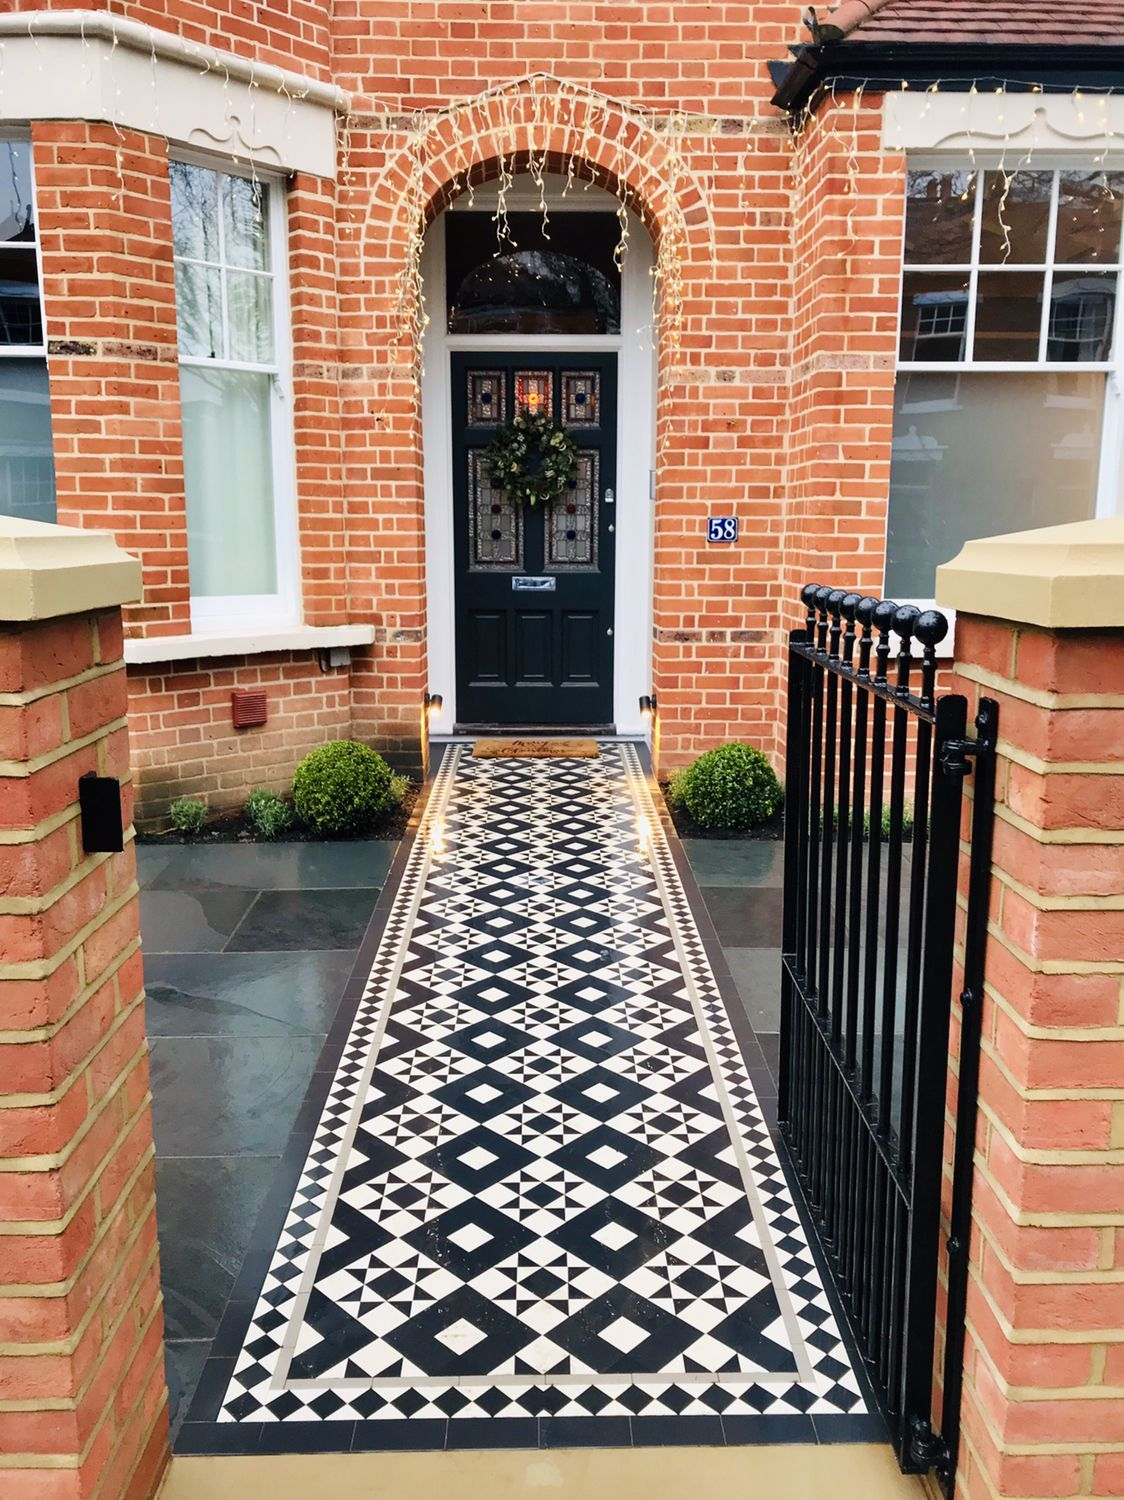 Double Fronted Victorian Red Brick House With New Victorian Mosaic Tile Installation Traditi In 2020 Victorian Front Garden Victorian Front Doors Victorian Mosaic Tile